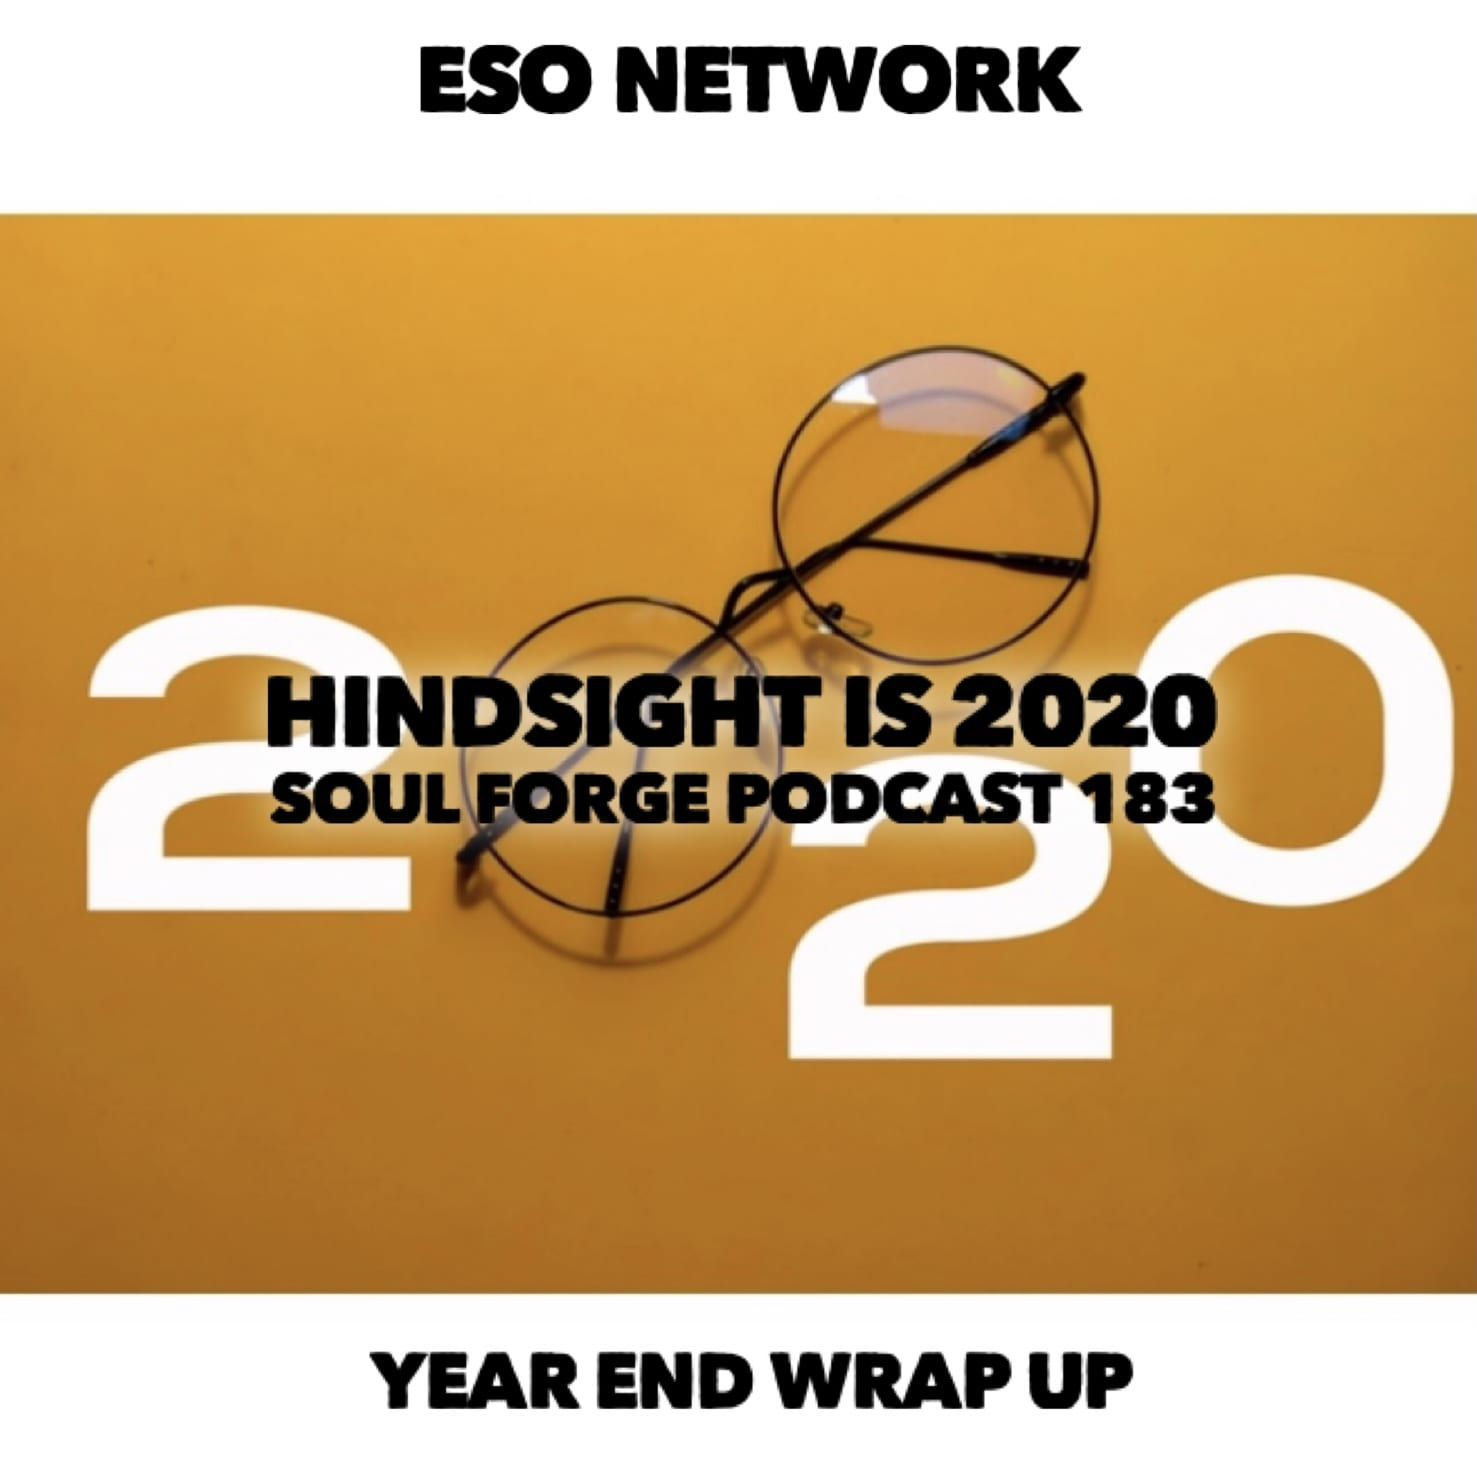 Hindsight is 2020 - 183